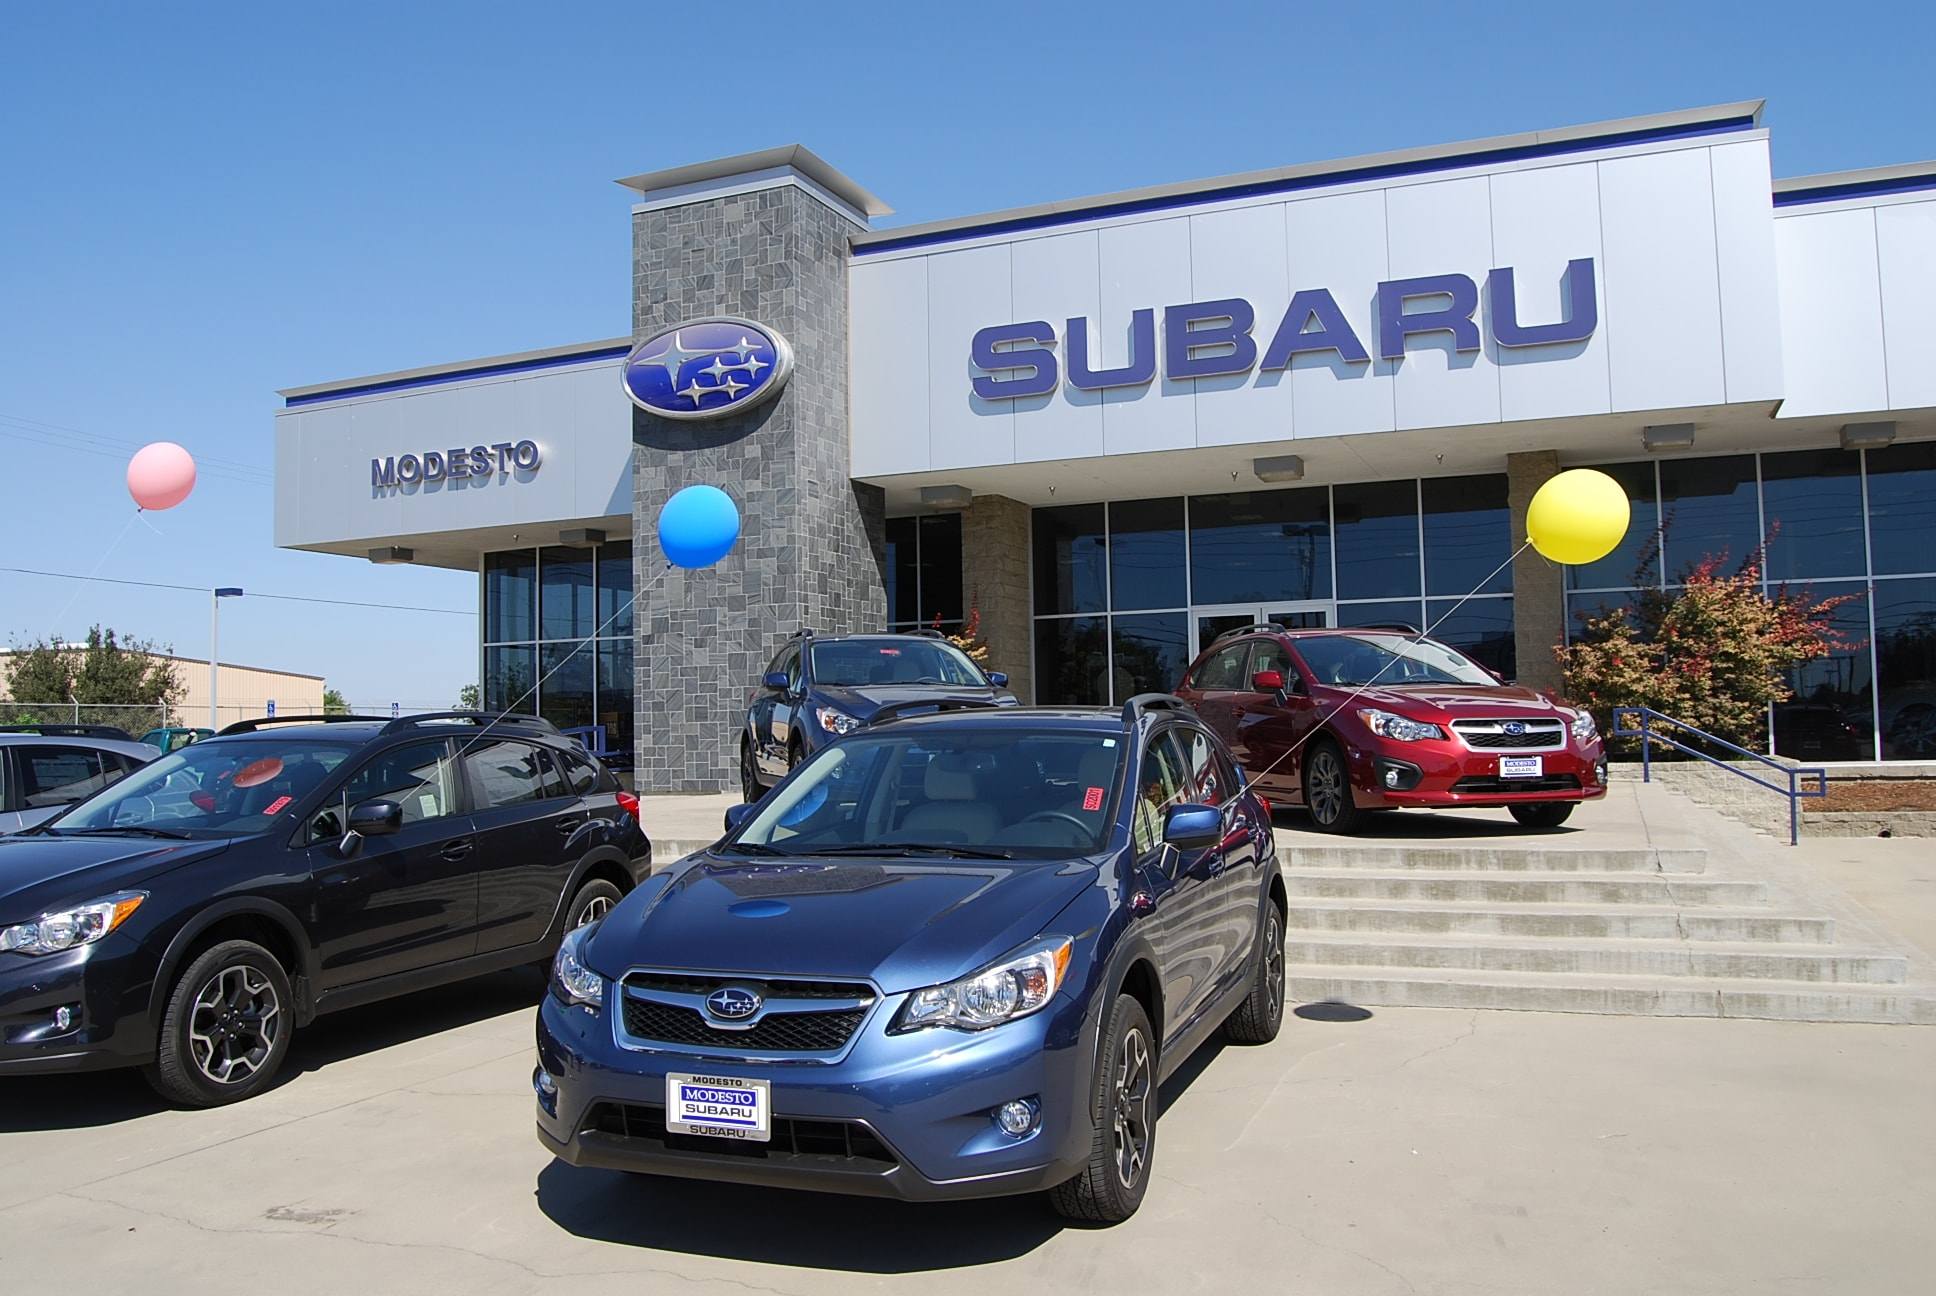 09cb1bd6791 Modesto Subaru is Proud to Serve Quality New and Used Subaru Models to  Manteca CA